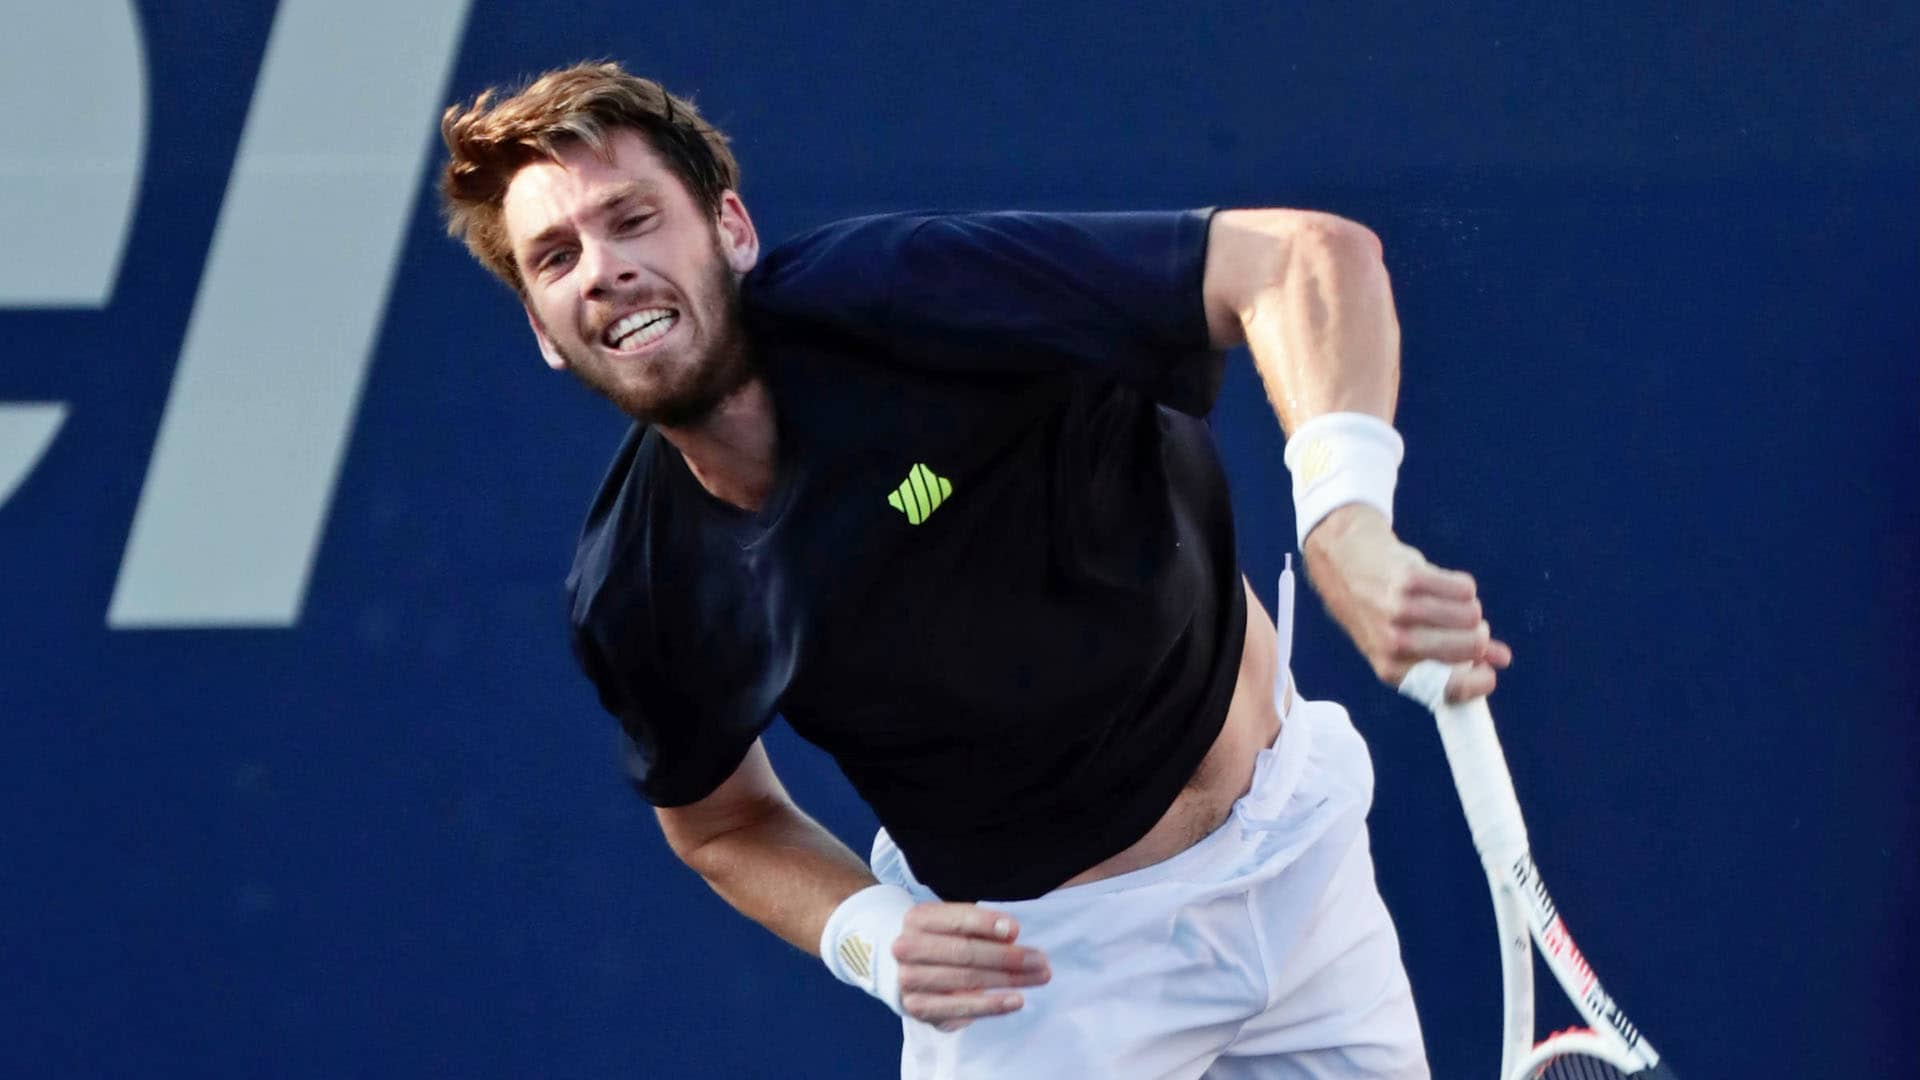 Los Cabos Open 2021: Cameron Norrie vs. Taylor Fritz Tennis Pick and Prediction